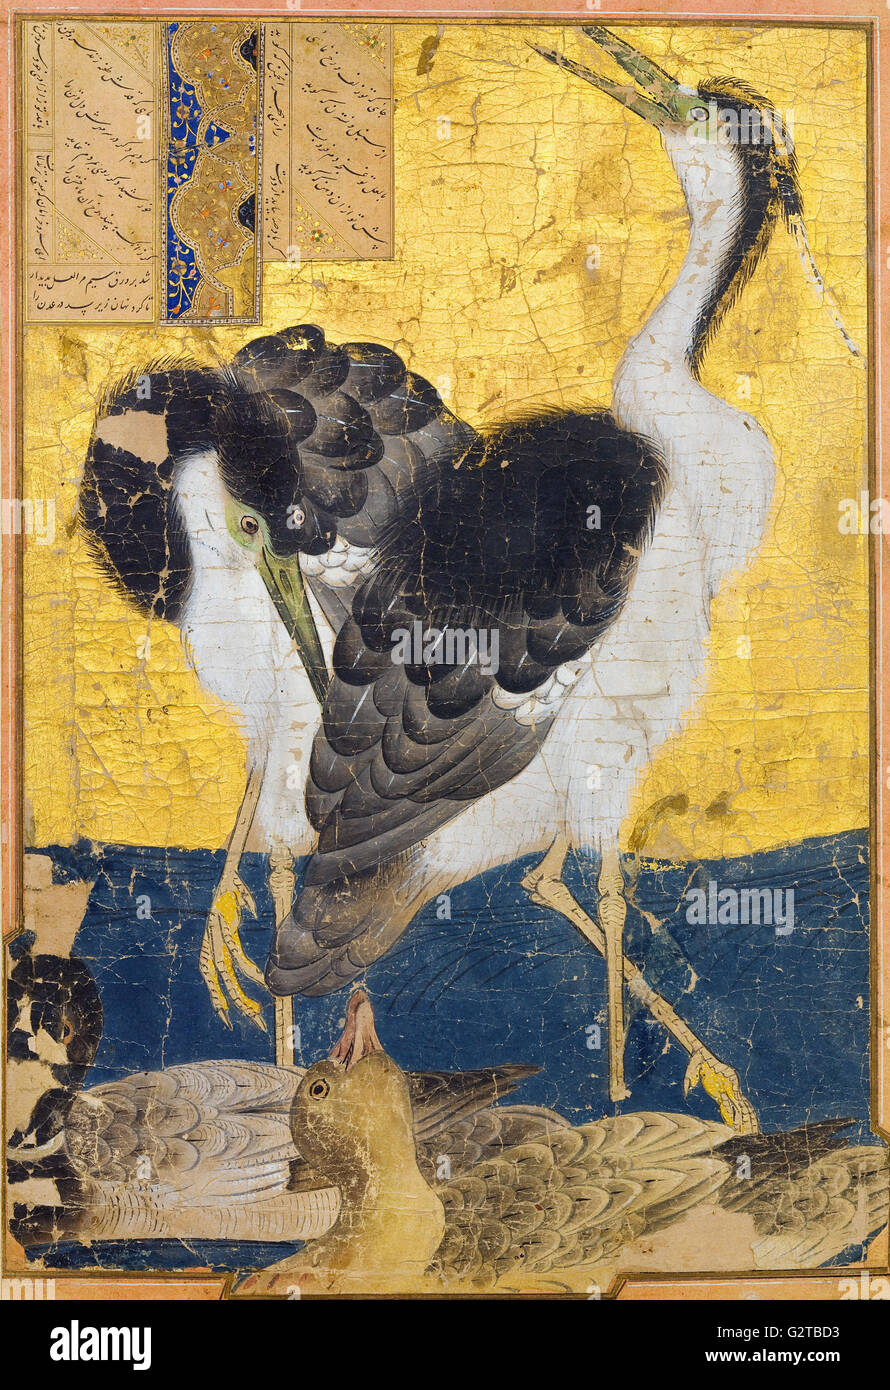 Unknown, Iran, 14th Century - Two Herons with Ducks - - Stock Image